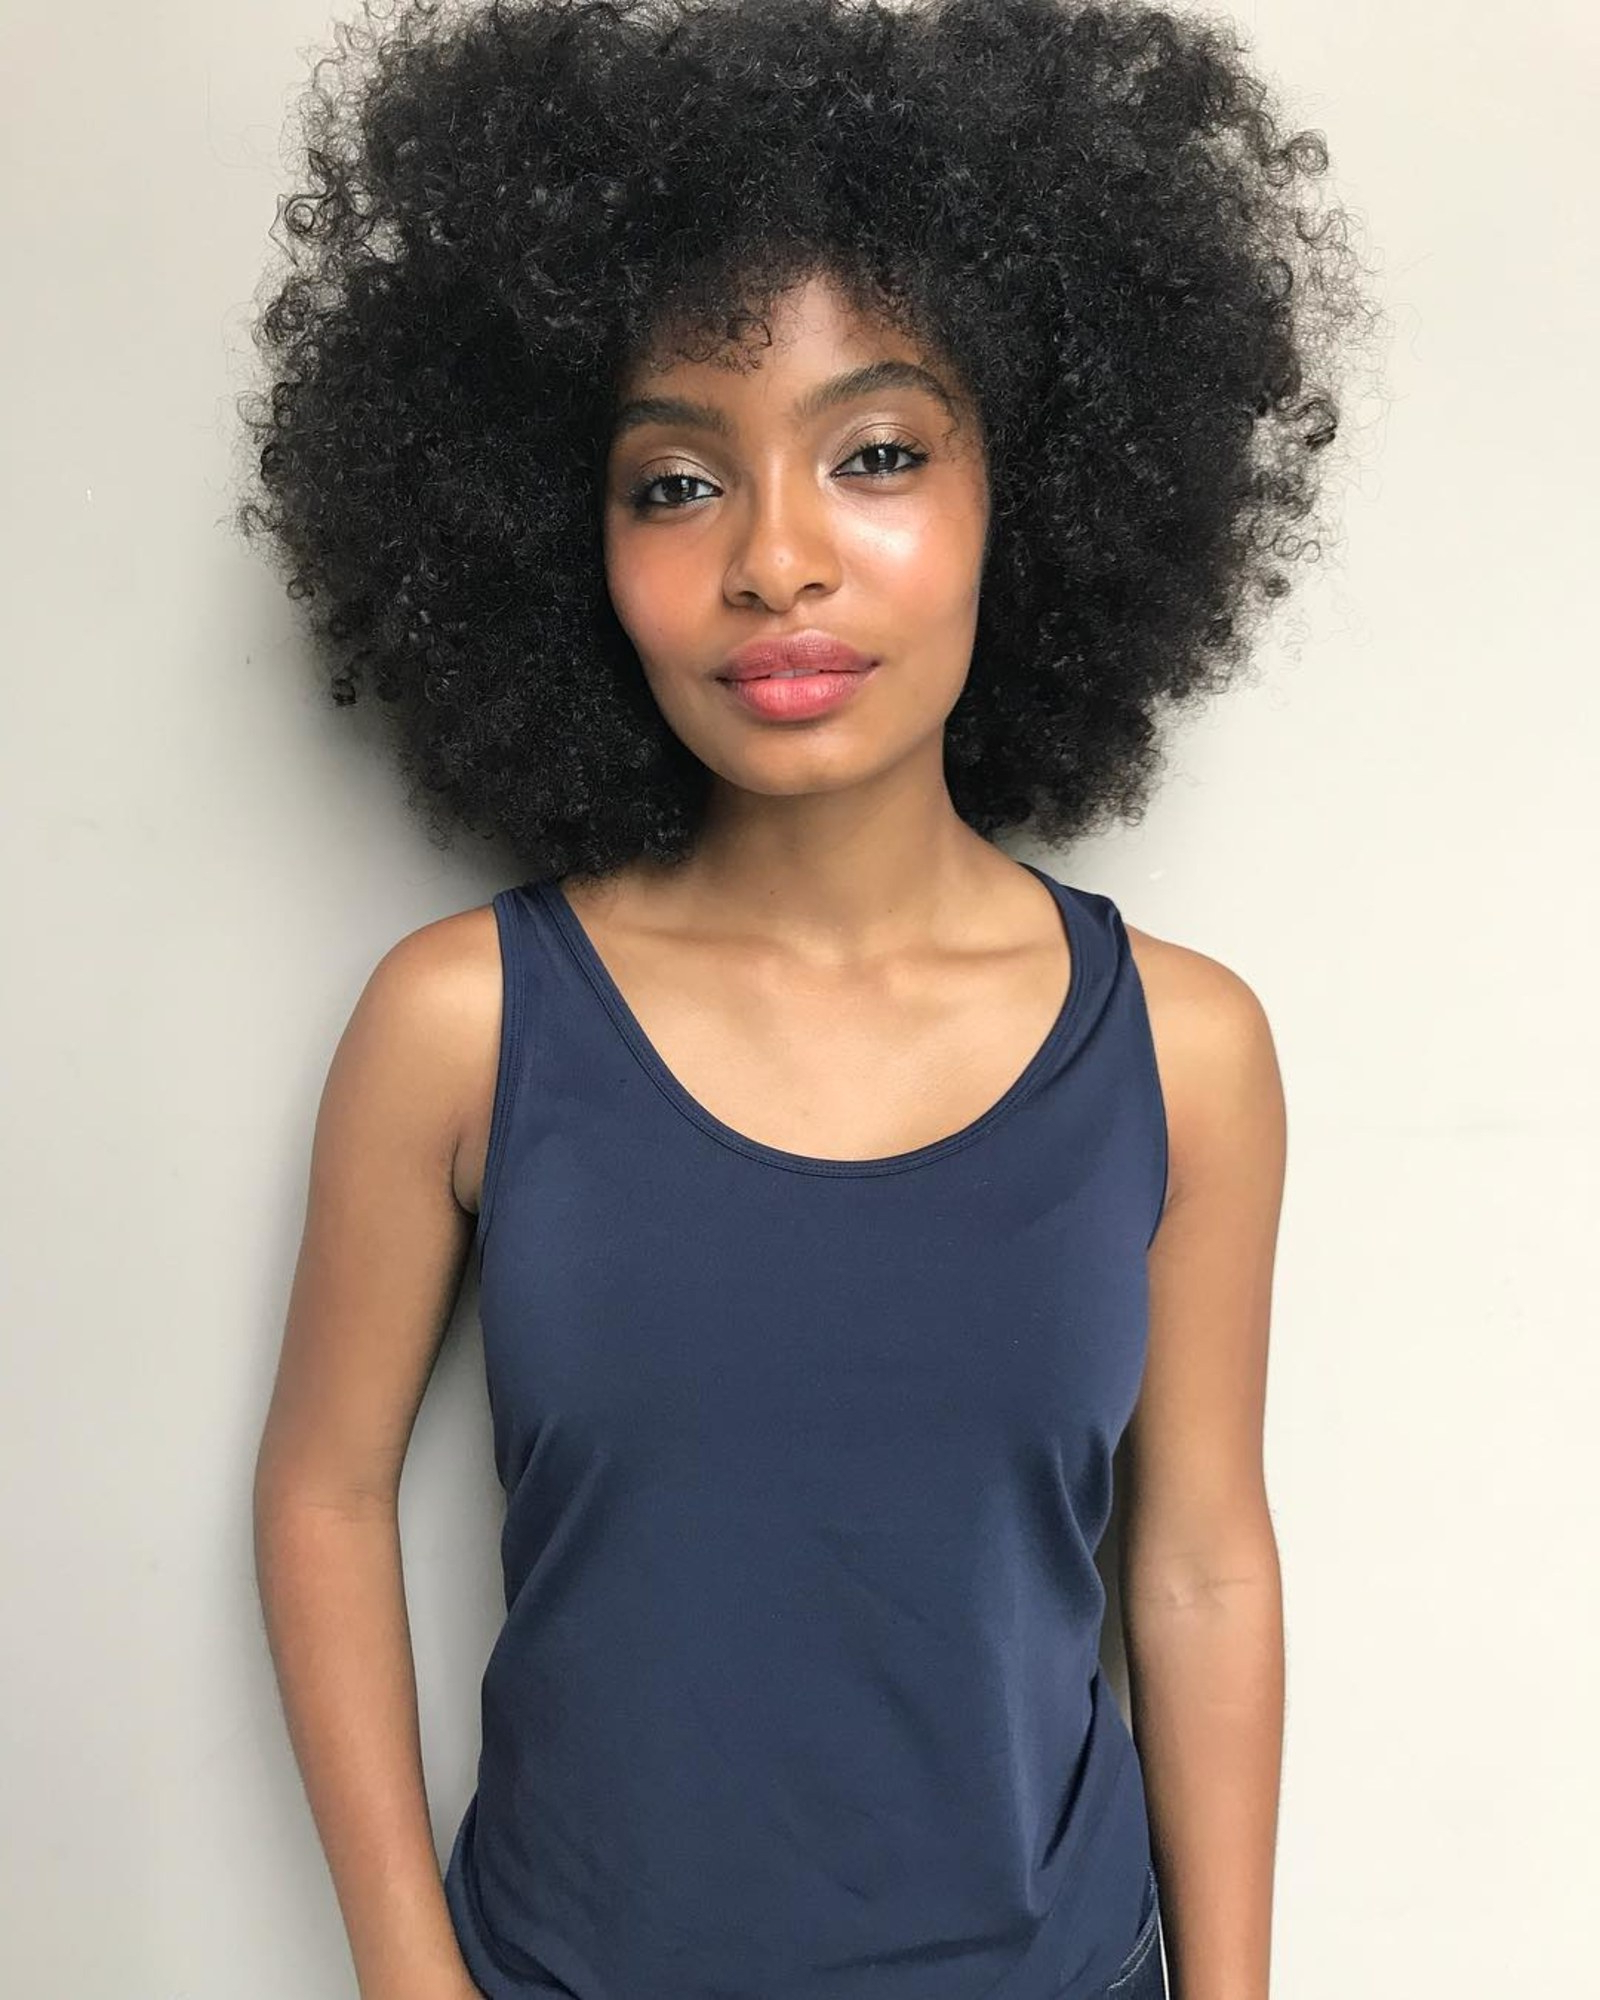 Summer Hairstyles 2017: The Best Summer Haircuts For Every Length Regarding Natural Textured Curly Hairstyles (View 6 of 25)